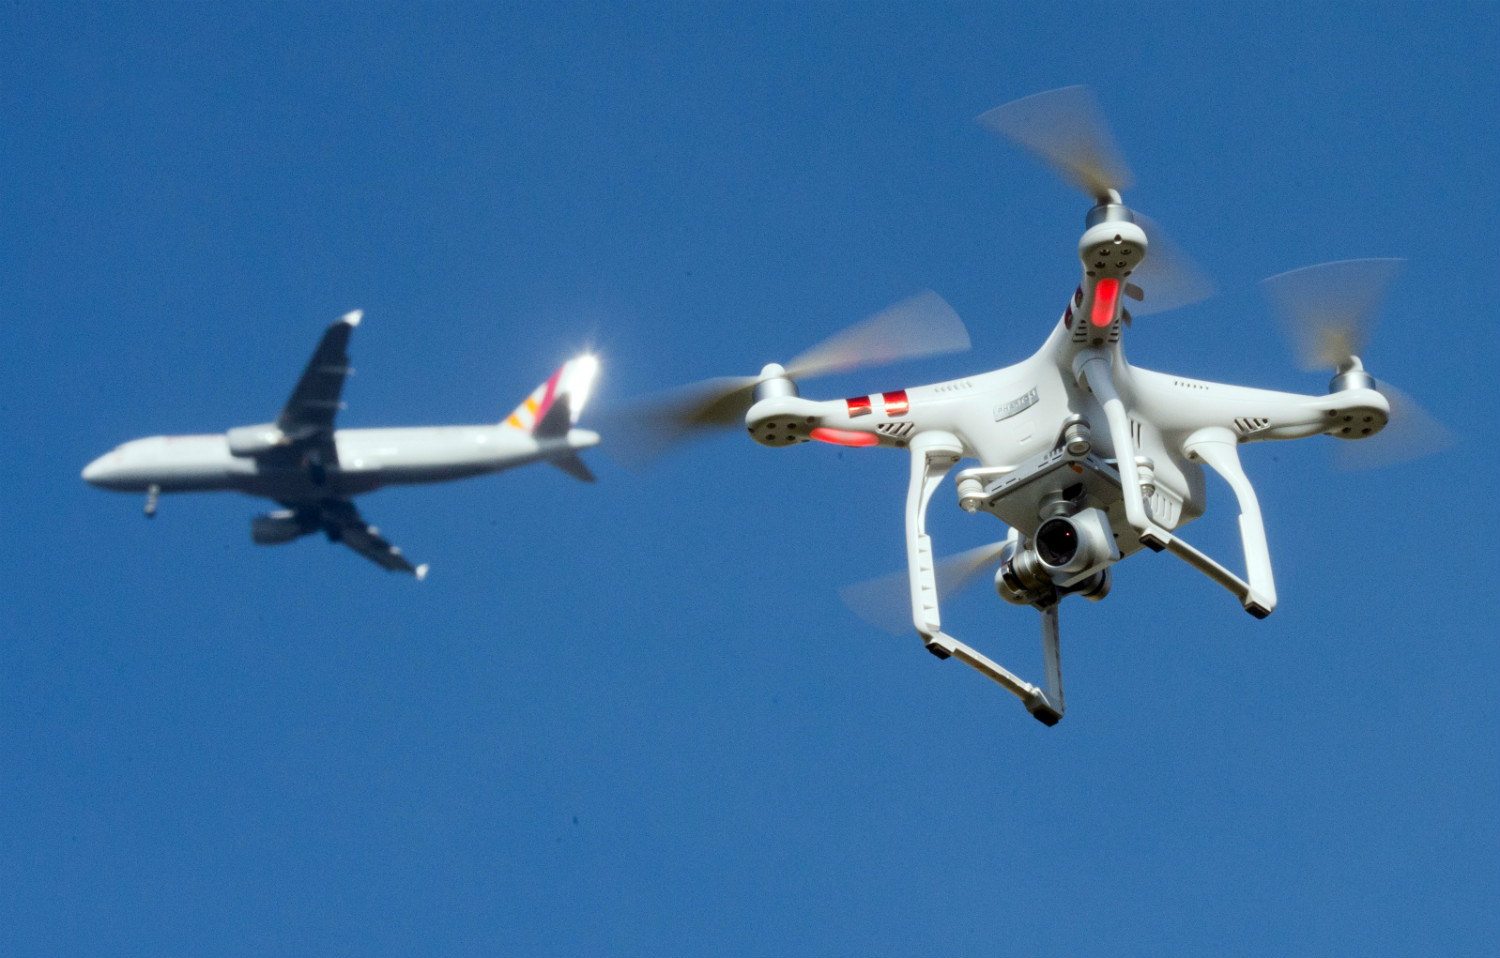 Flights grounded at Germany's Frankfurt airport post the sighting of Drone